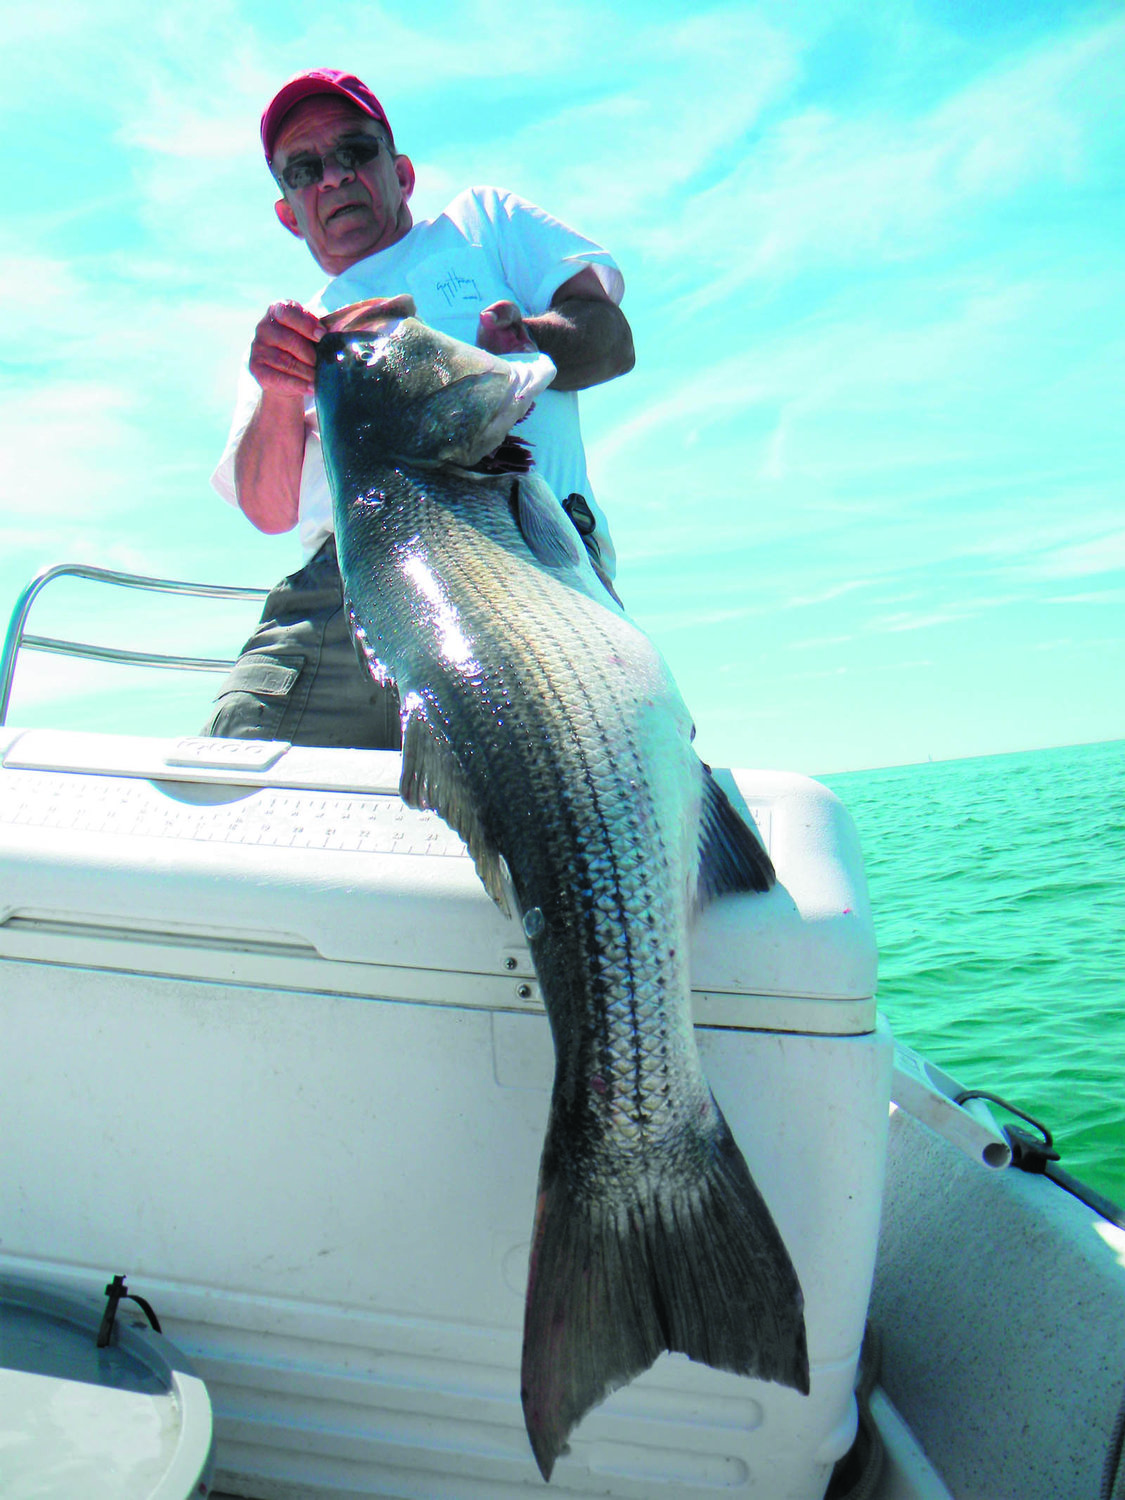 "SEMINAR: Charley Soares will speak about ""Successful Striper Fishing"" casting to striped bass with lures on Monday, Feb. 22, 7 p.m. at a RISAA online Zoom seminar. www.Register at www.risaa.org."